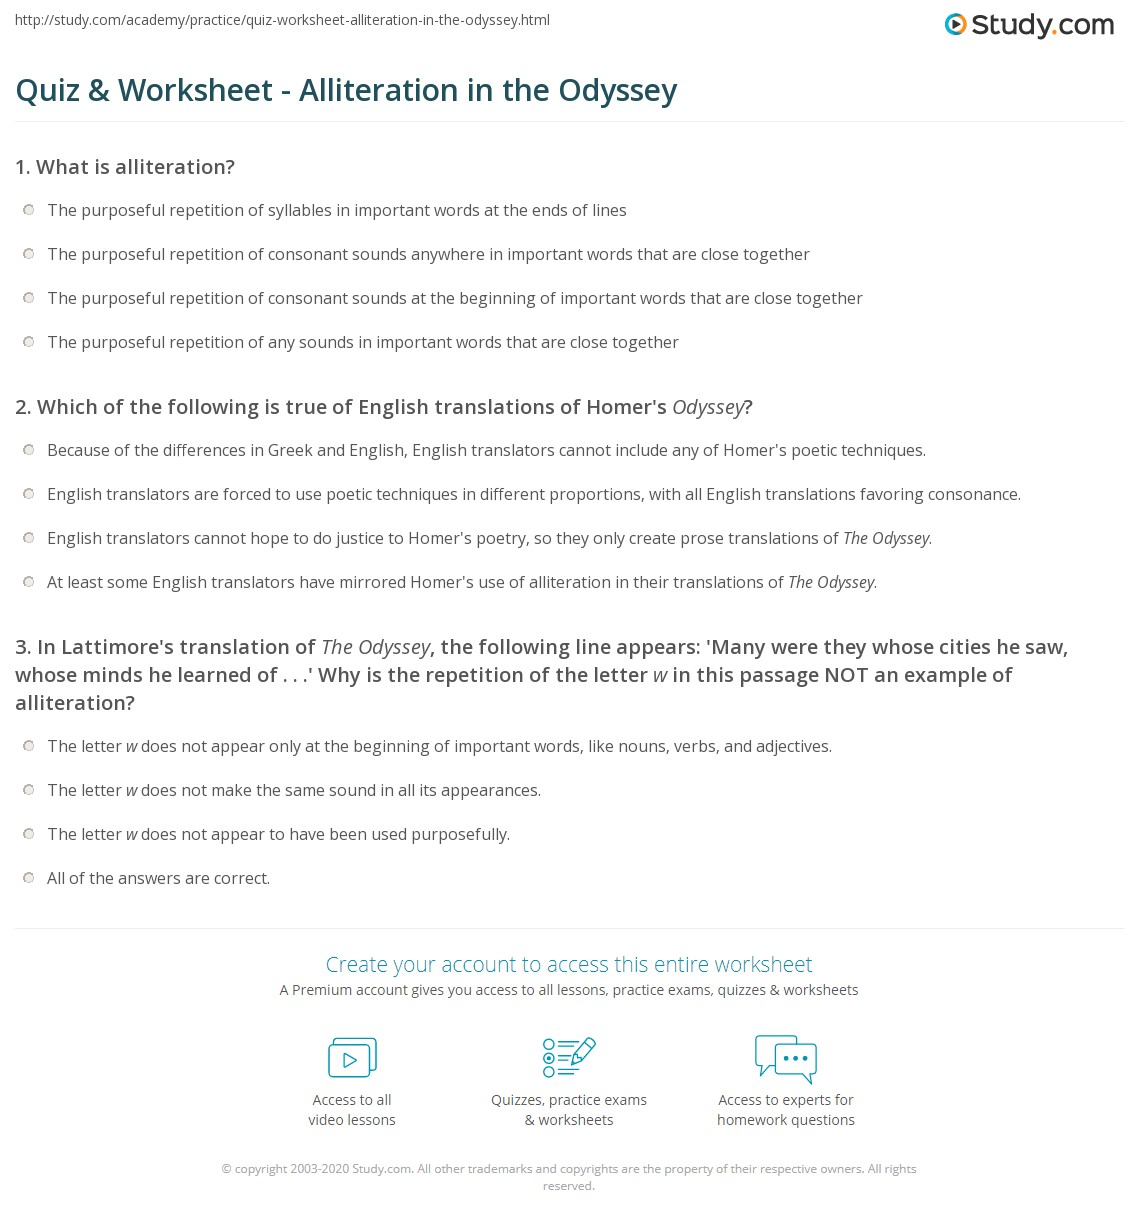 Worksheets Destinos Worksheet Answers destinos worksheets ktrdecor com answer key delibertad source bosschens